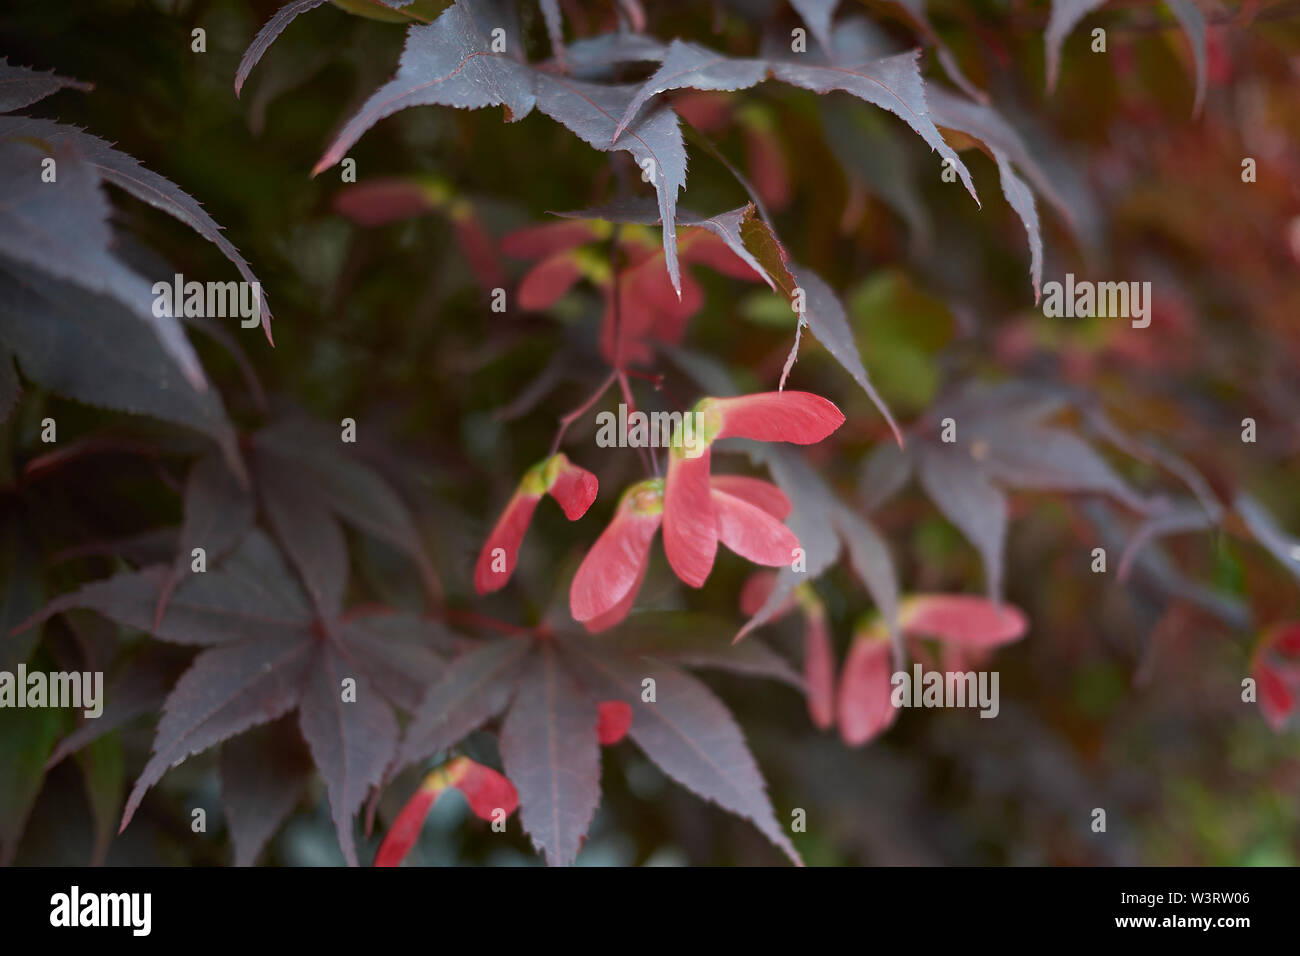 red foliage  and fruit of Acer palmatum - Stock Image